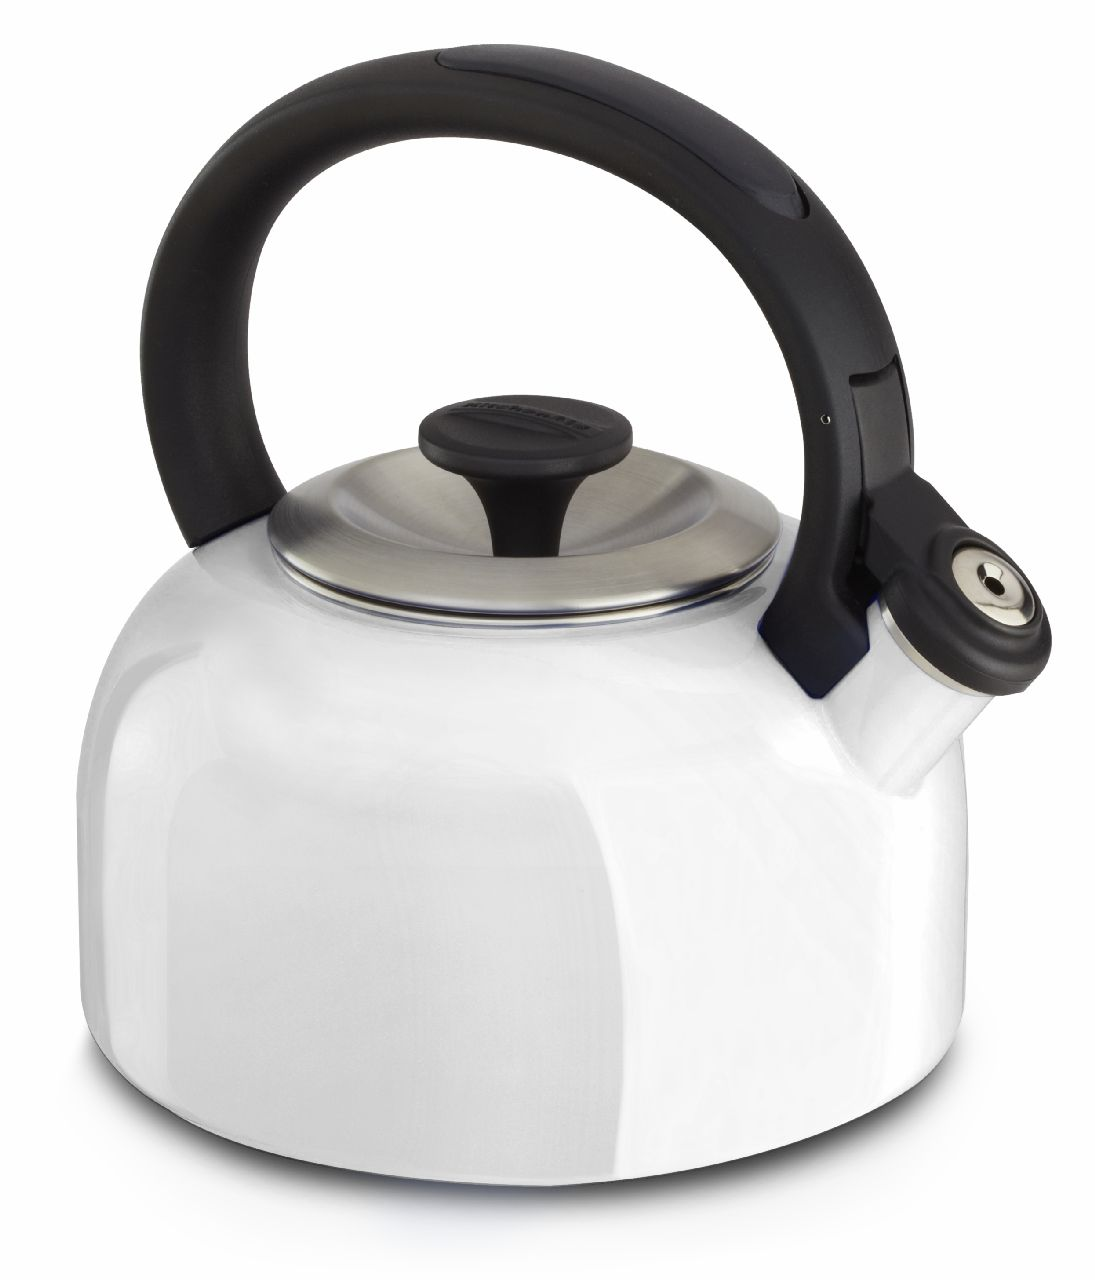 KitchenAid®20Quart Kettle with Full Handle, White, KTEN20BNWH  DealTrend -> Kitchenaid Jug Kettle